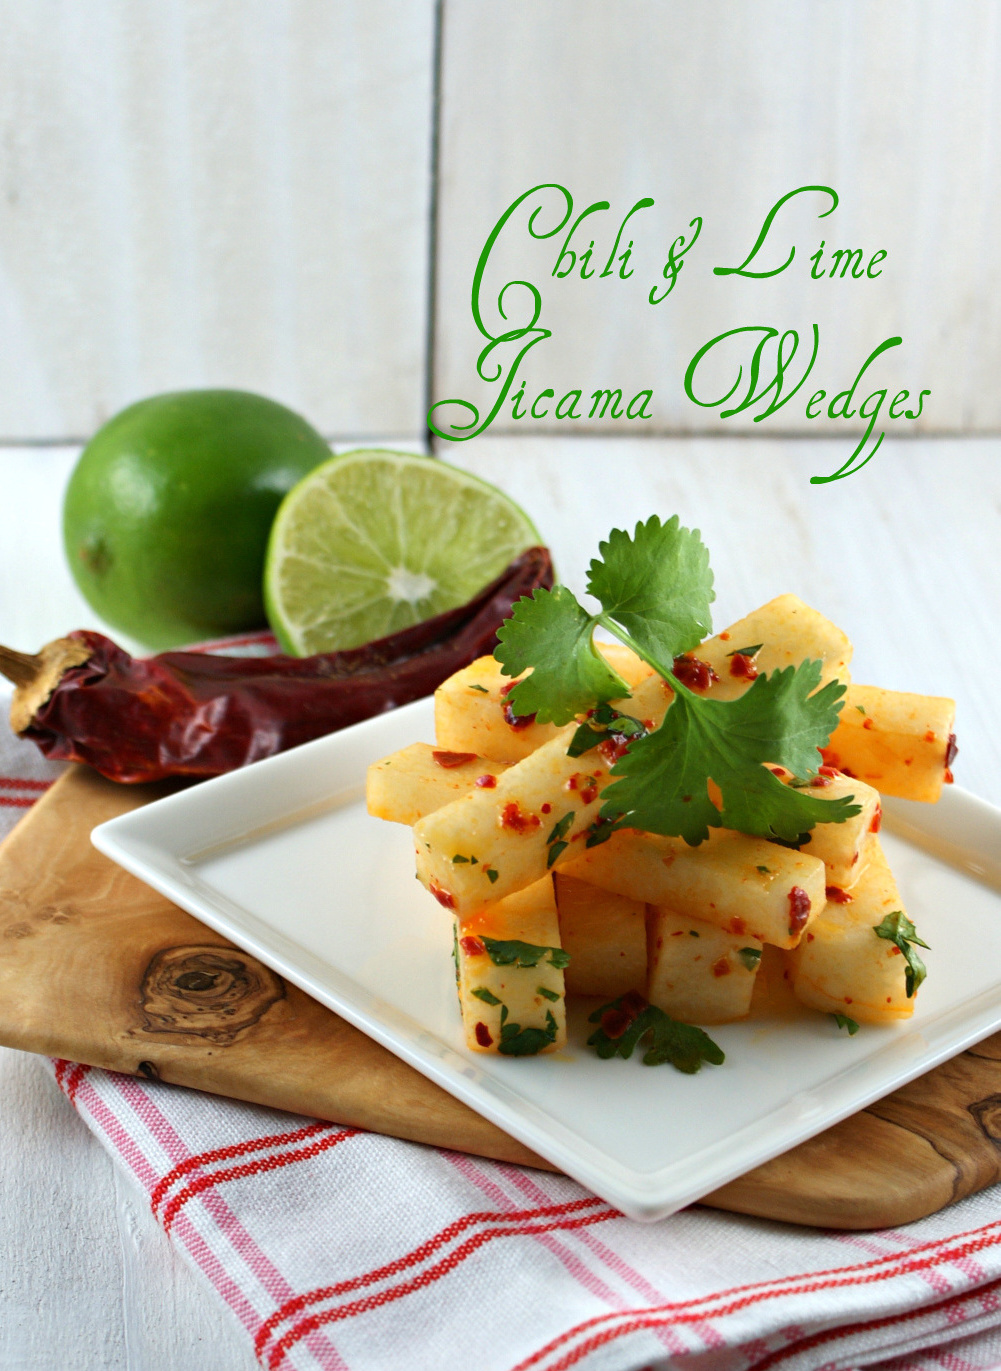 OMG! That's Allergy Free?: Jicama, Chili, Lime and Cilantro Wedges ...